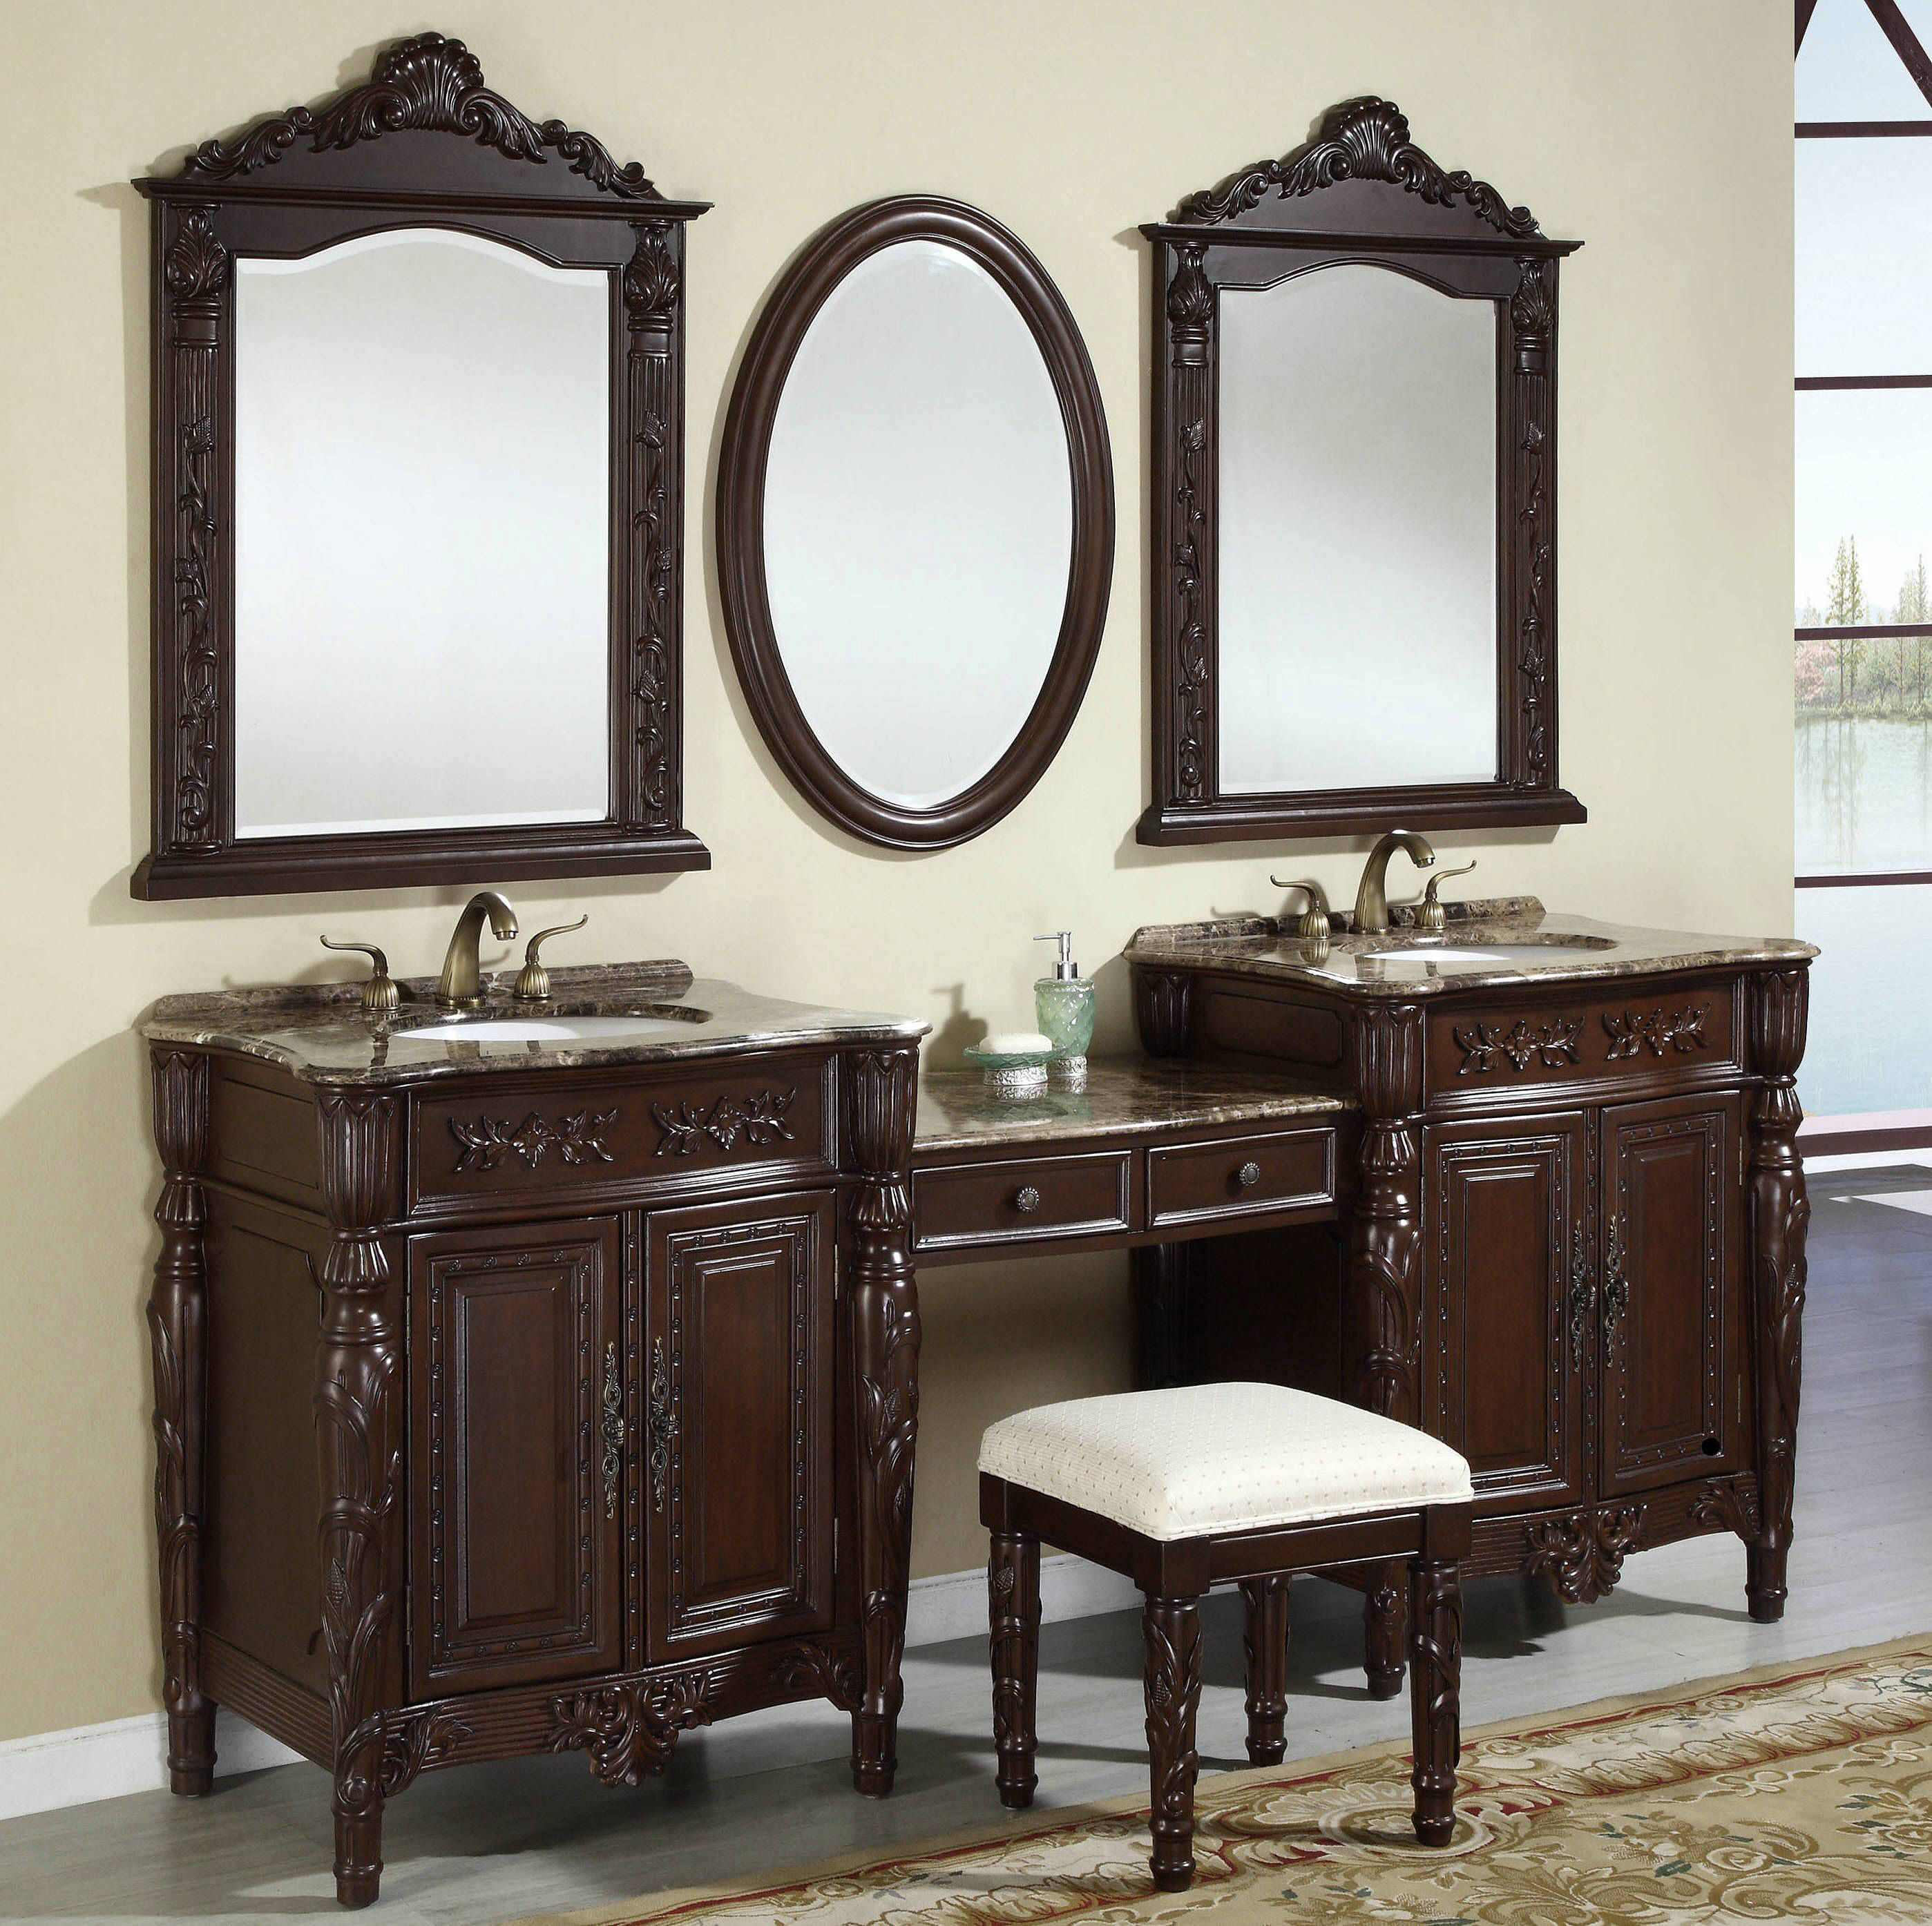 Astounding Awesome Double Sink Bathroom Double Bathroom Sink Bathroom Alphanode Cool Chair Designs And Ideas Alphanodeonline